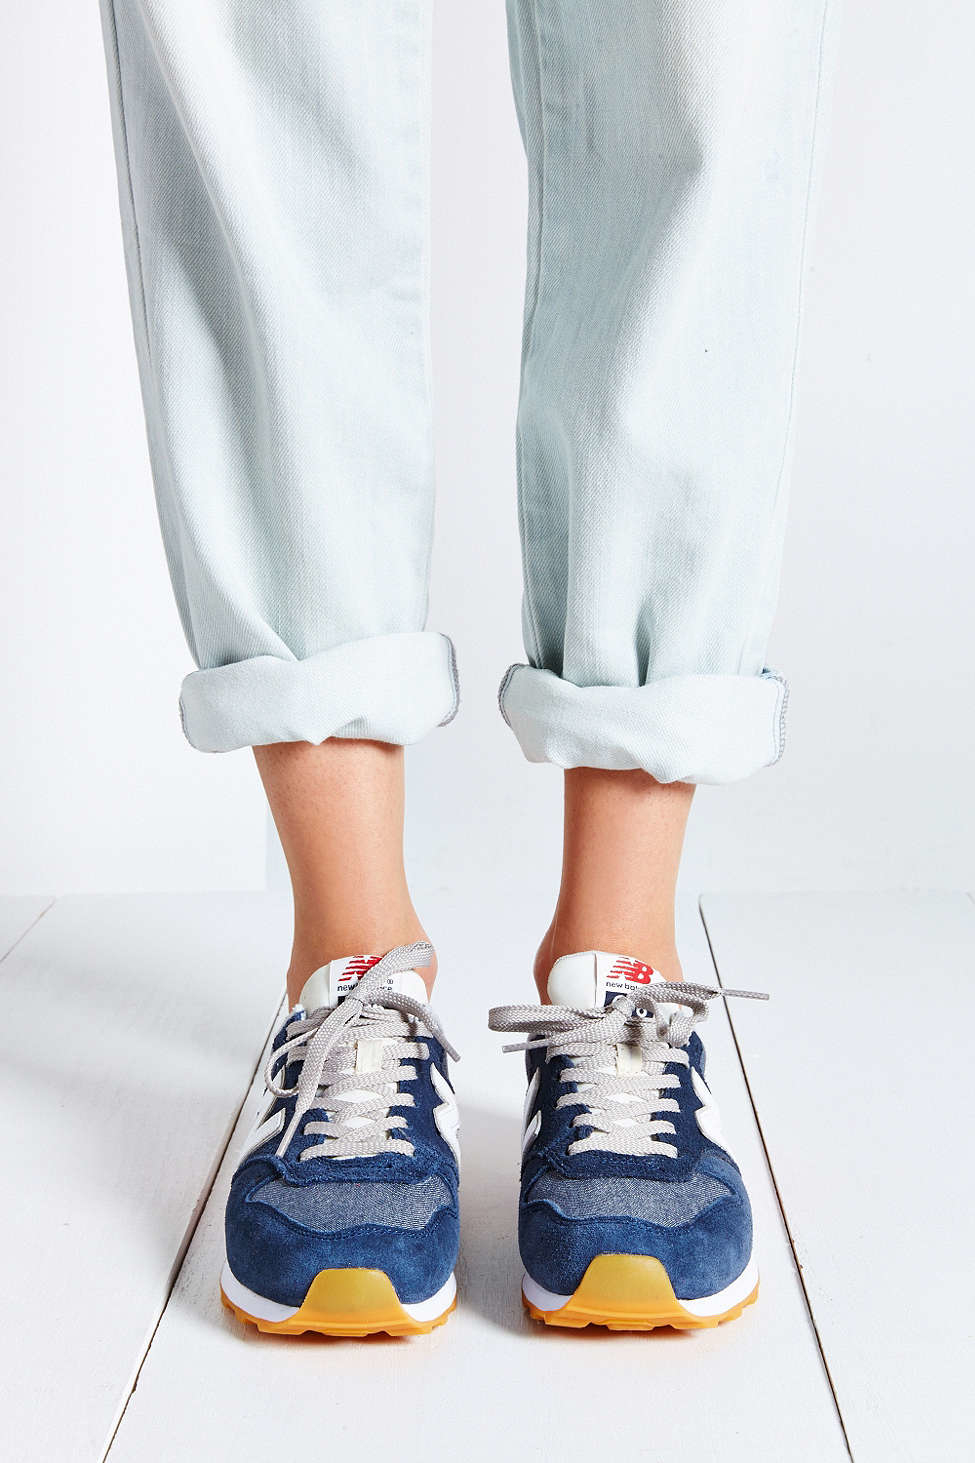 official photos 3f480 53504 New Balance 696 Capsule Running Sneaker in Blue - Lyst